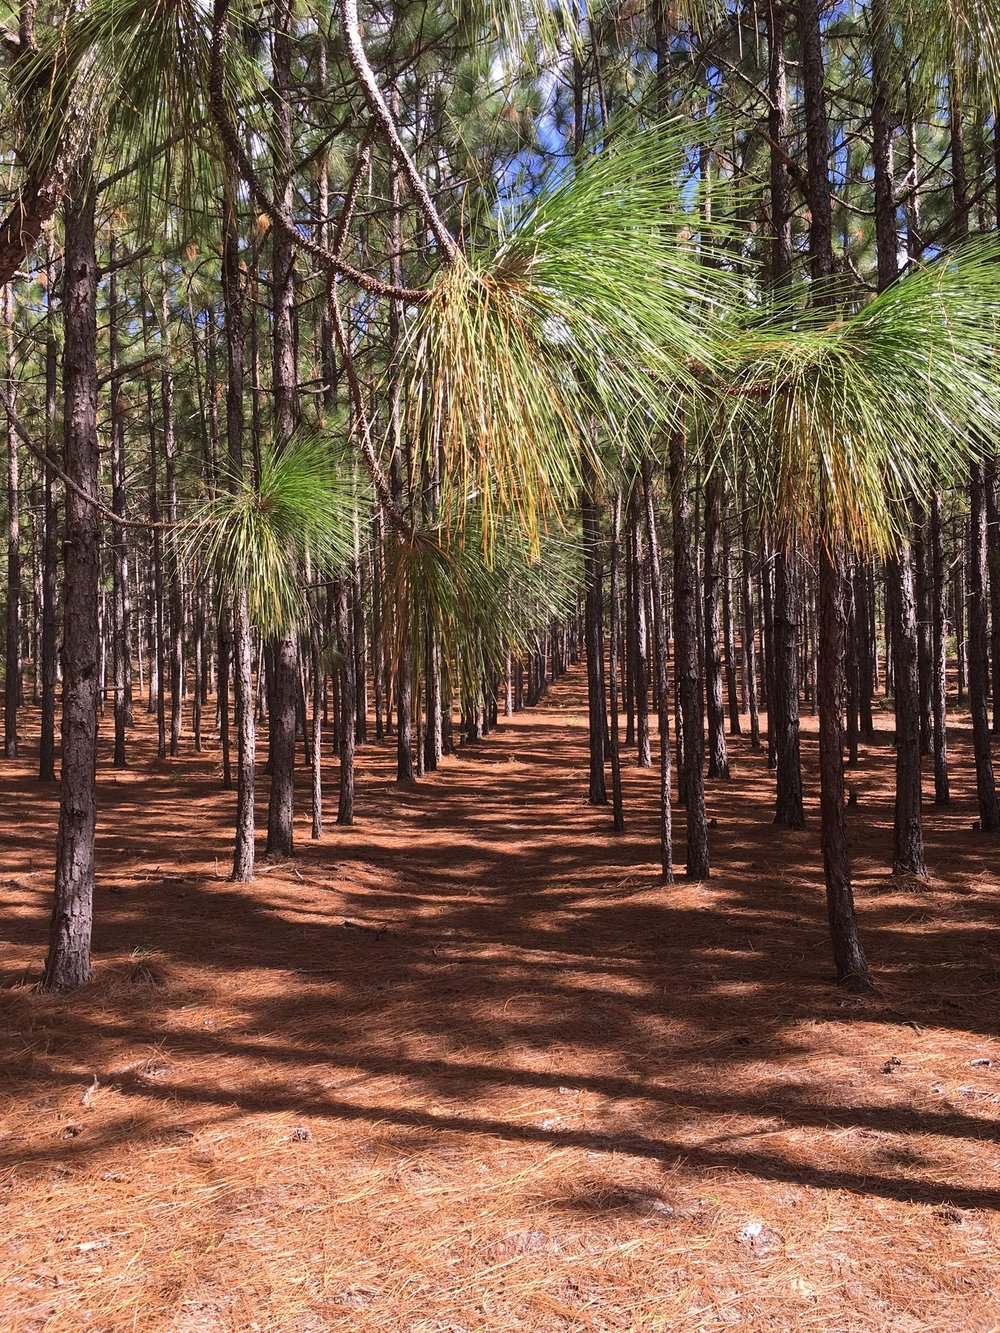 Longleaf pine tree shedding their pine needles.